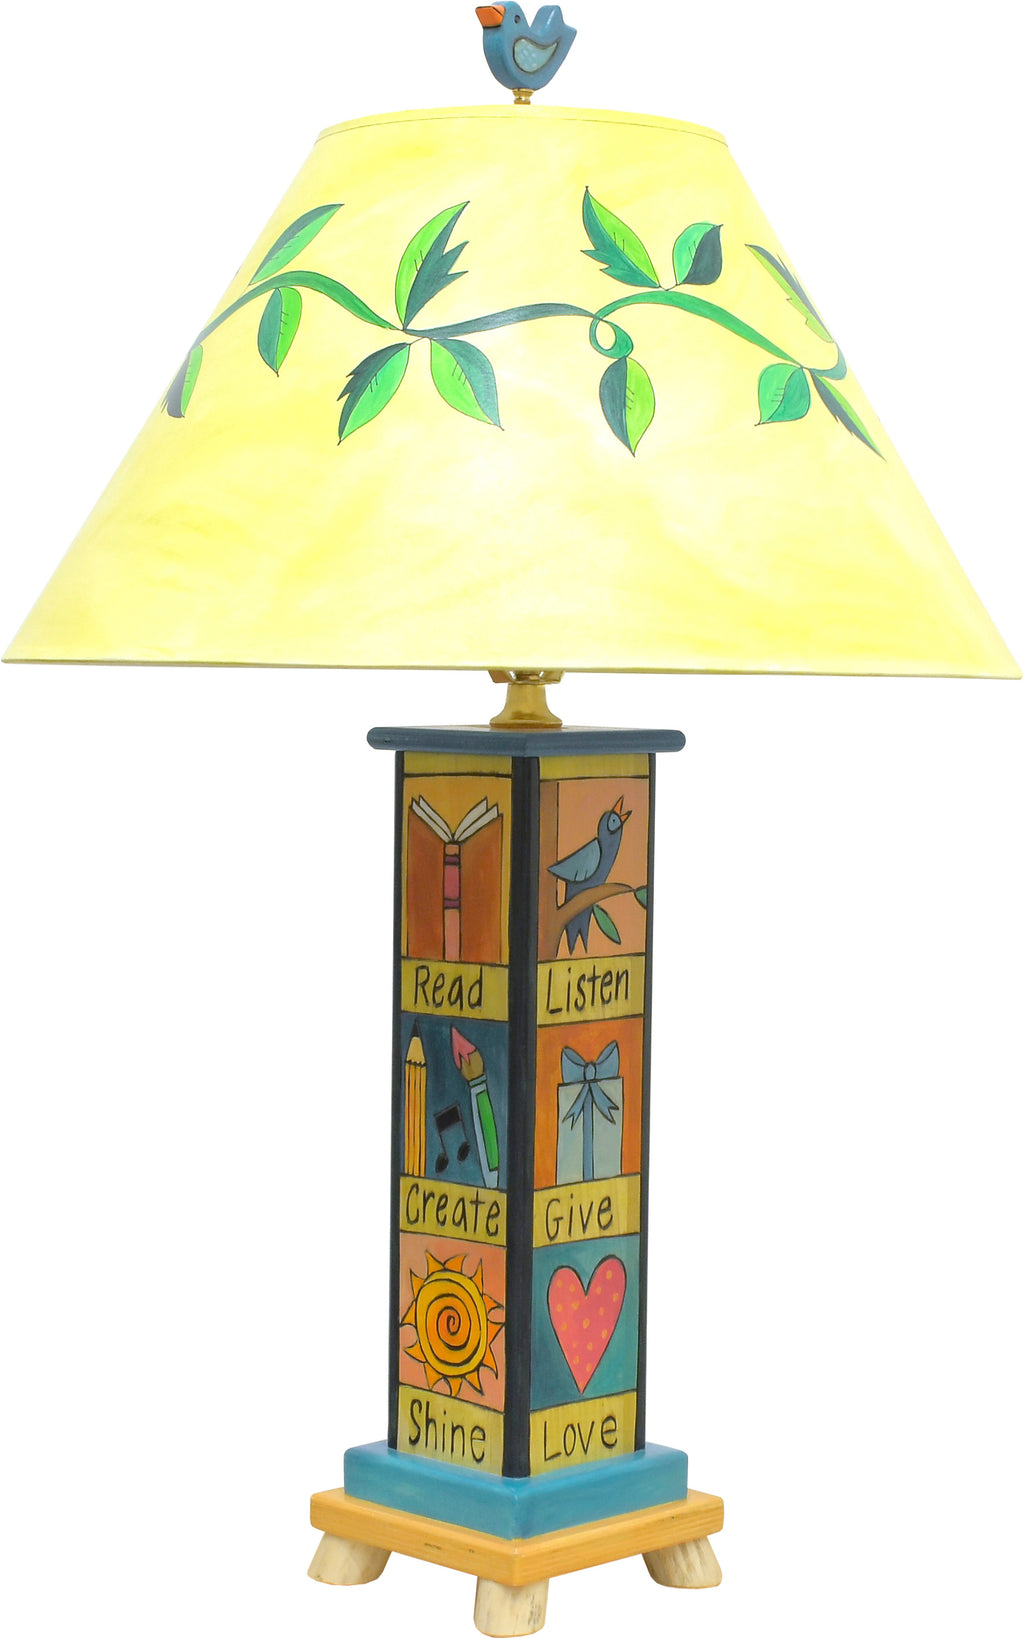 Fun and folky table lamp with vine-wrapped shade, bird finial, and base with cute boxed icons and coordinating phrases, front view